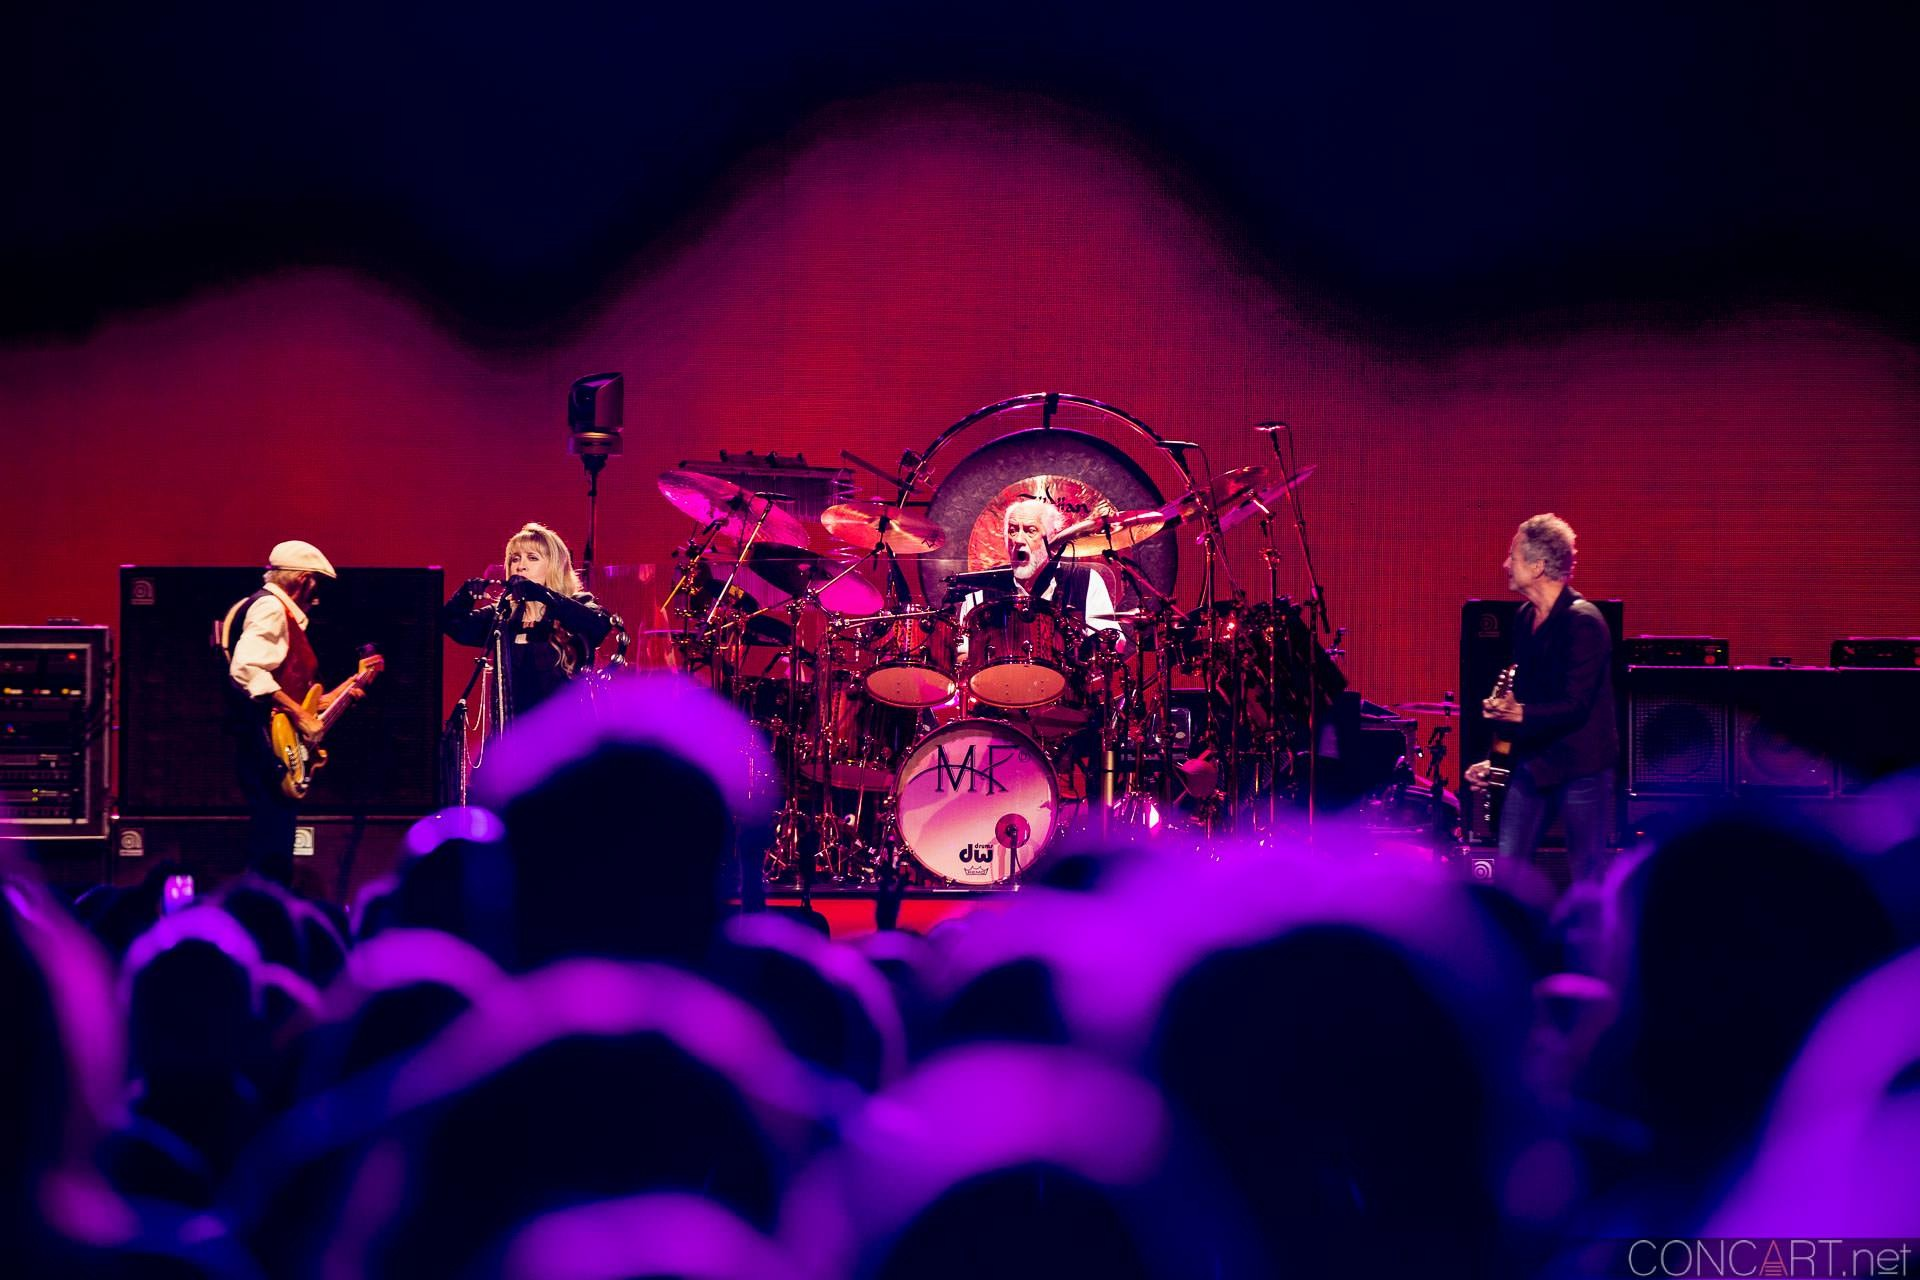 014-fleetwood-mac-live-indianapolis-bankers-life-fieldhouse-2014